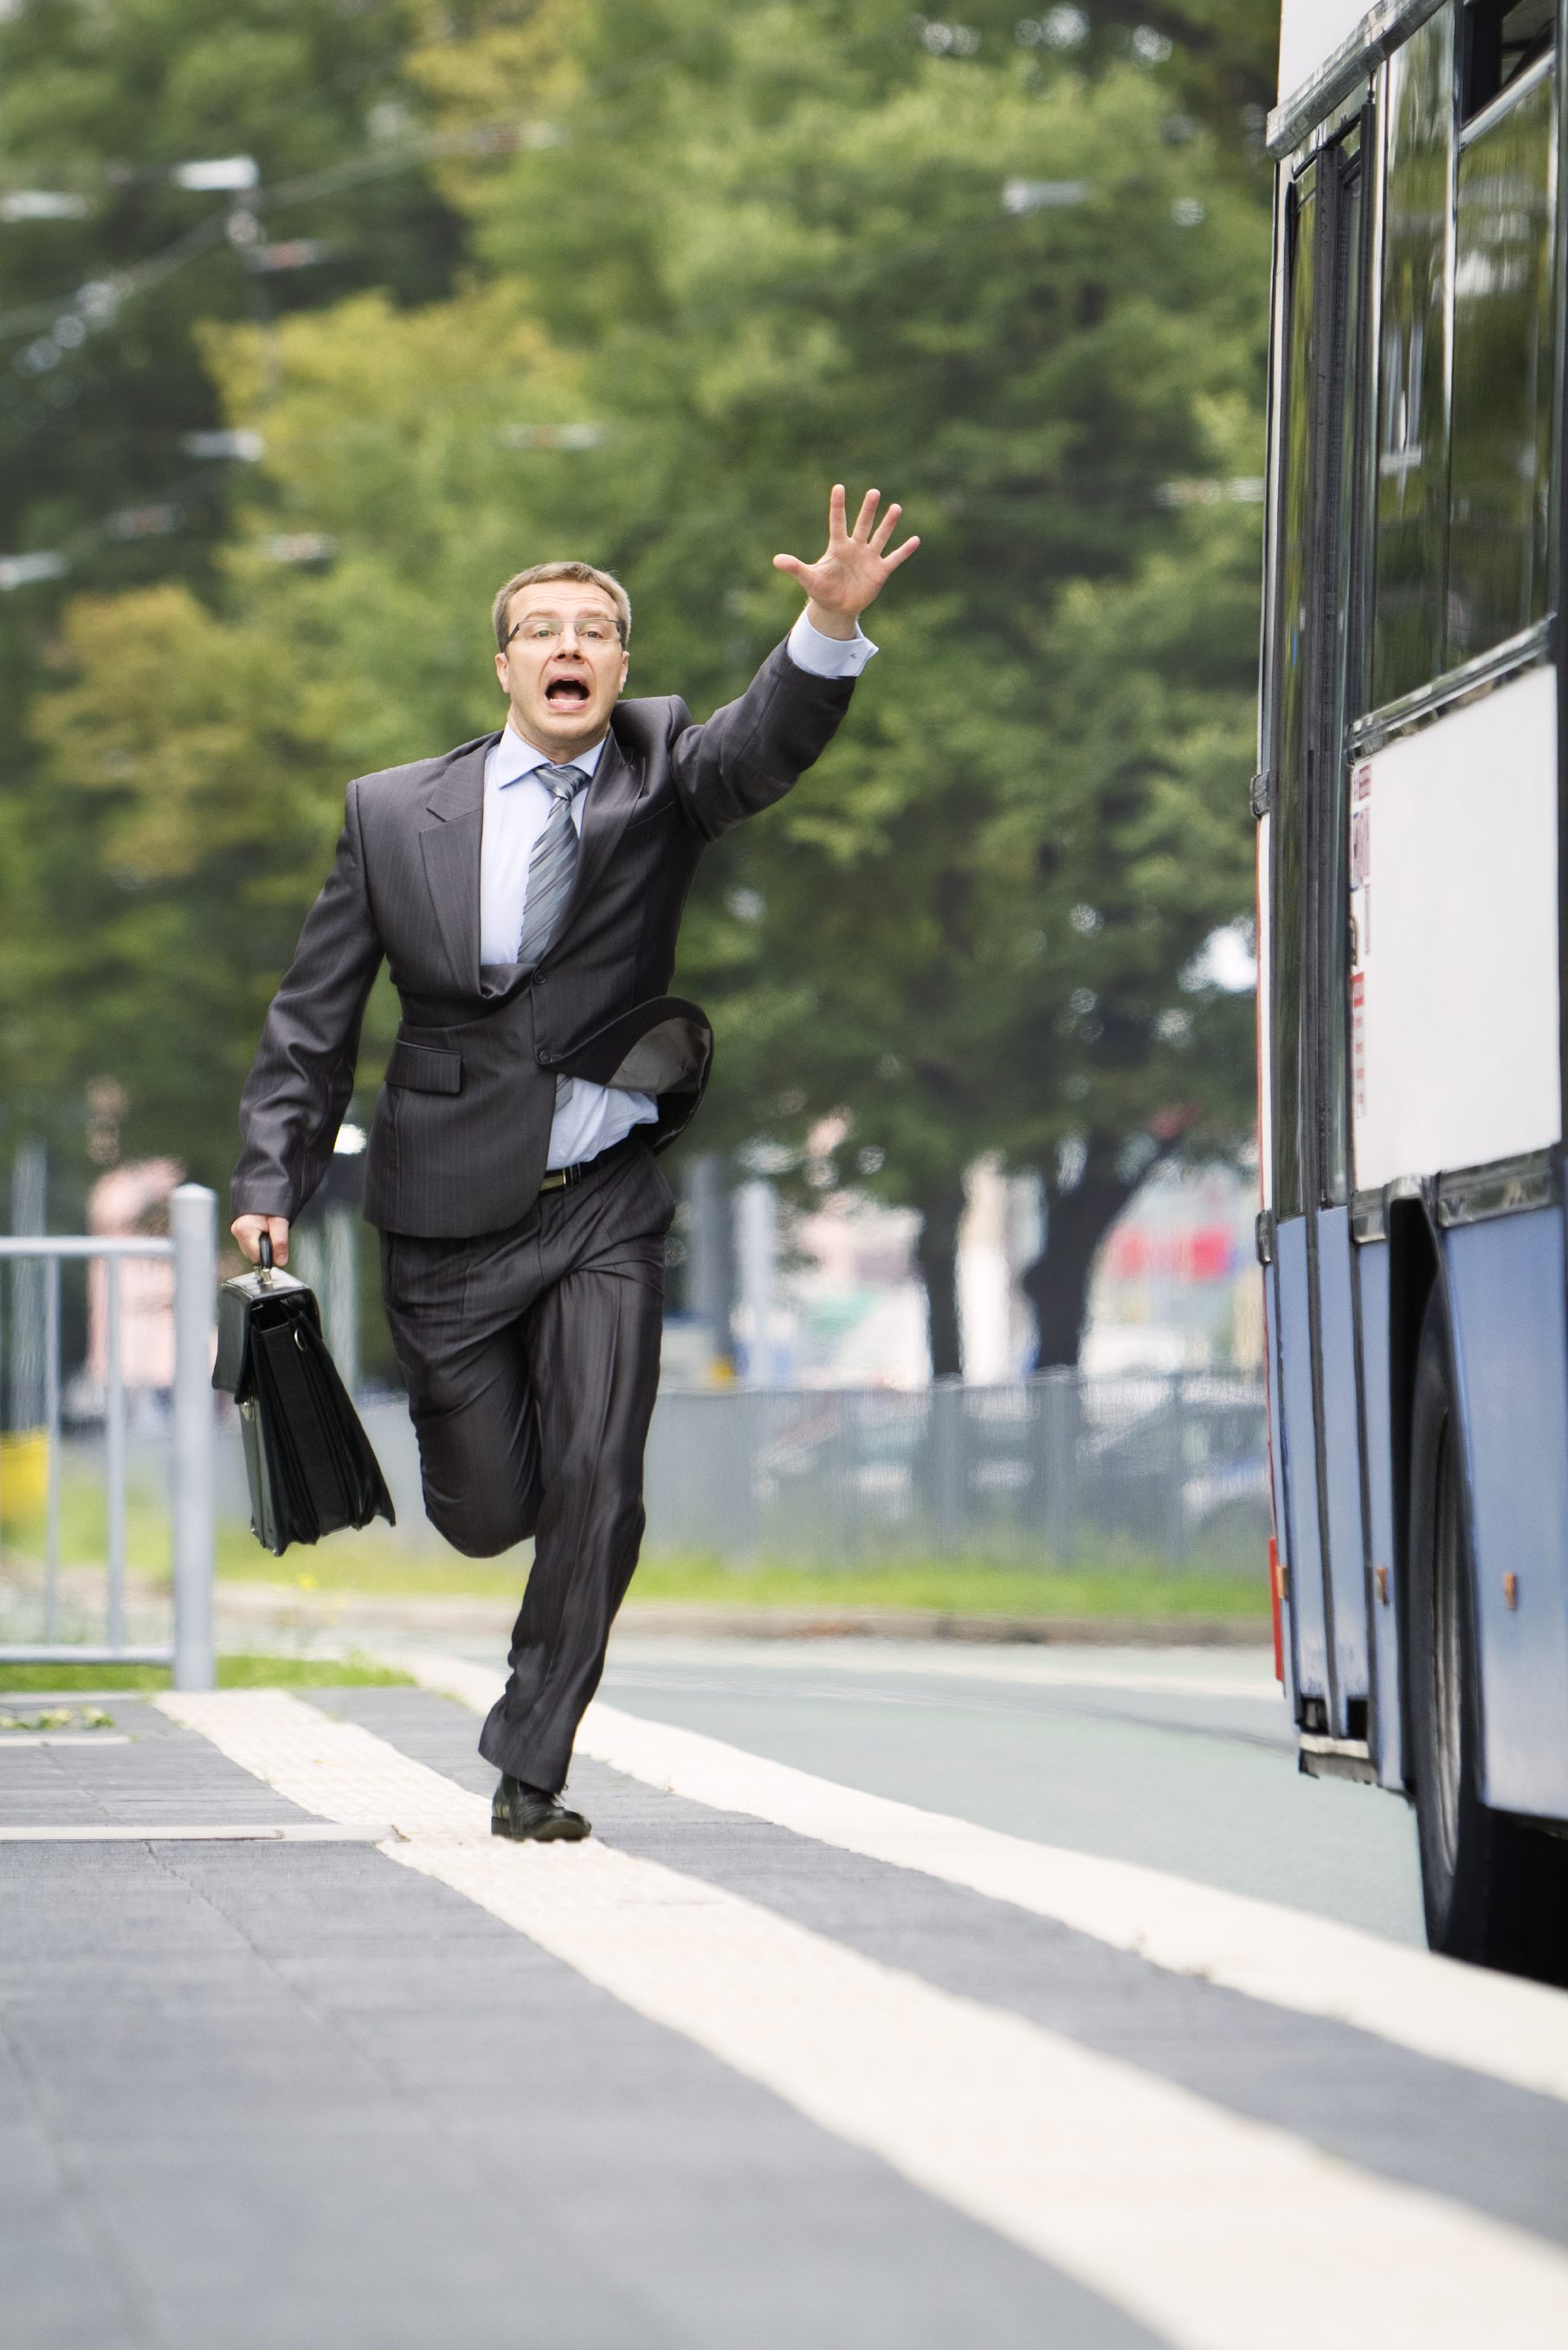 late business man running after bus